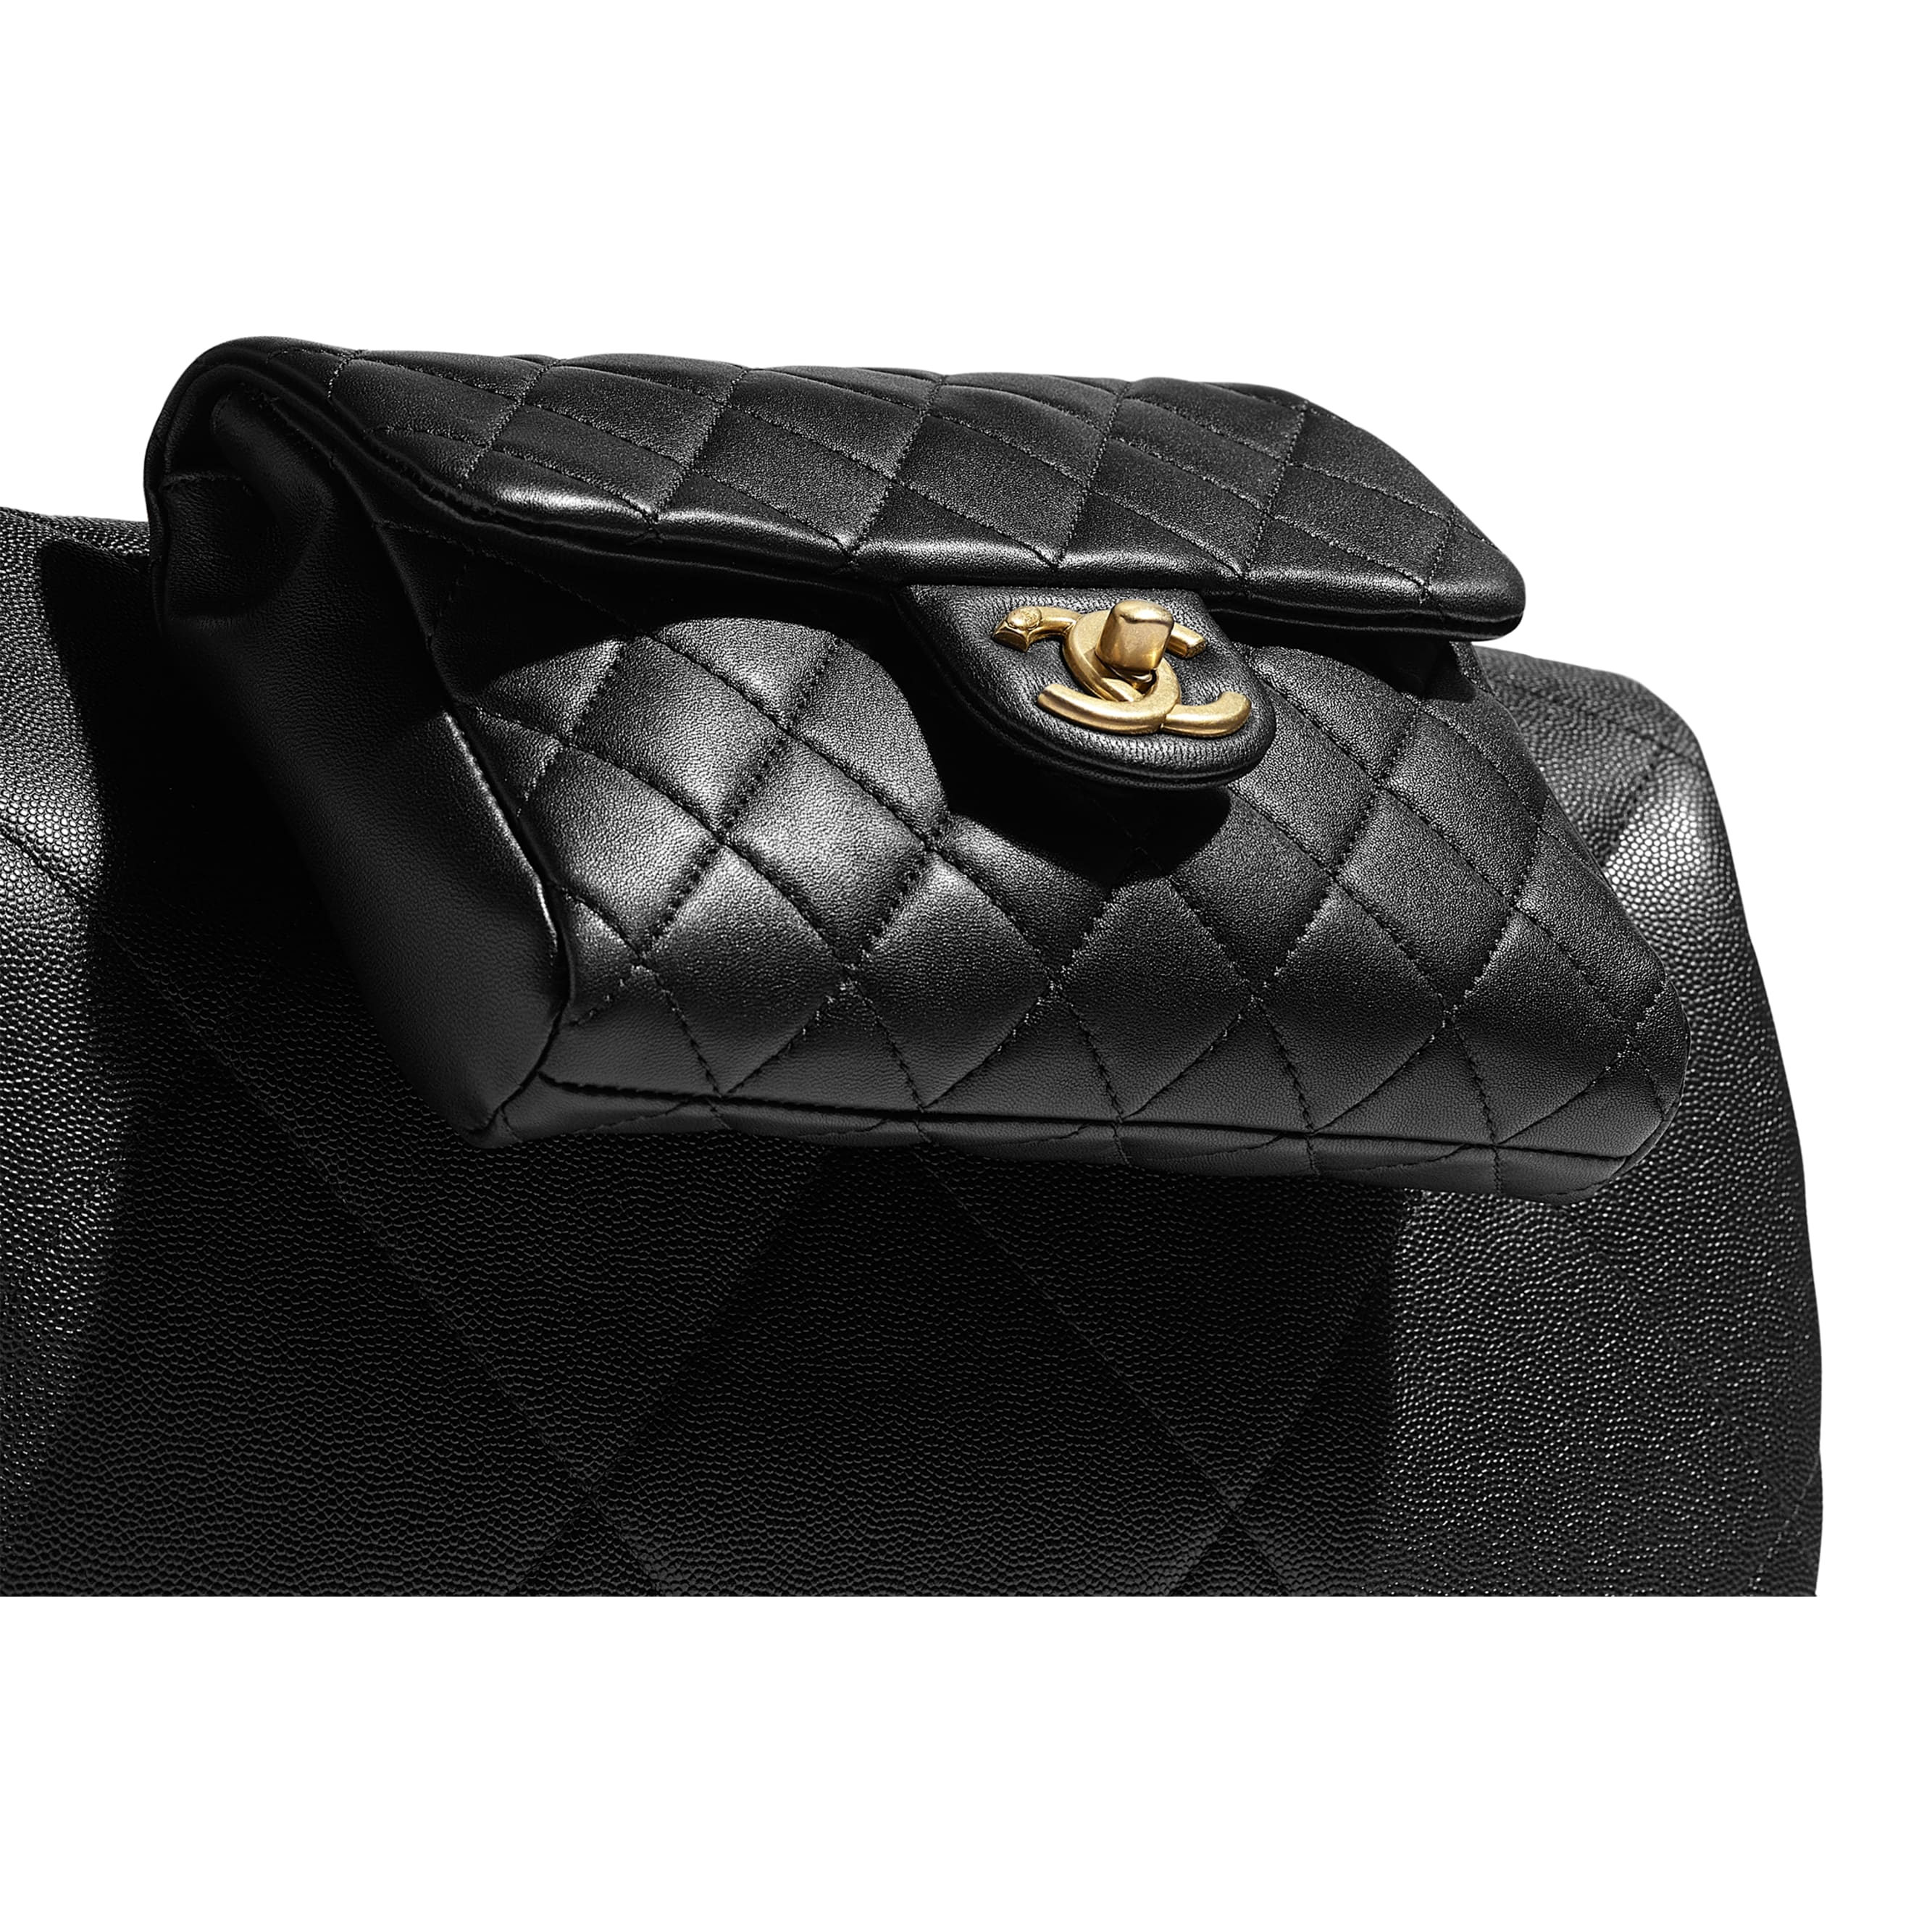 Large Bowling Bag - Black - Grained Calfskin, Lambskin & Gold Metal - Extra view - see standard sized version